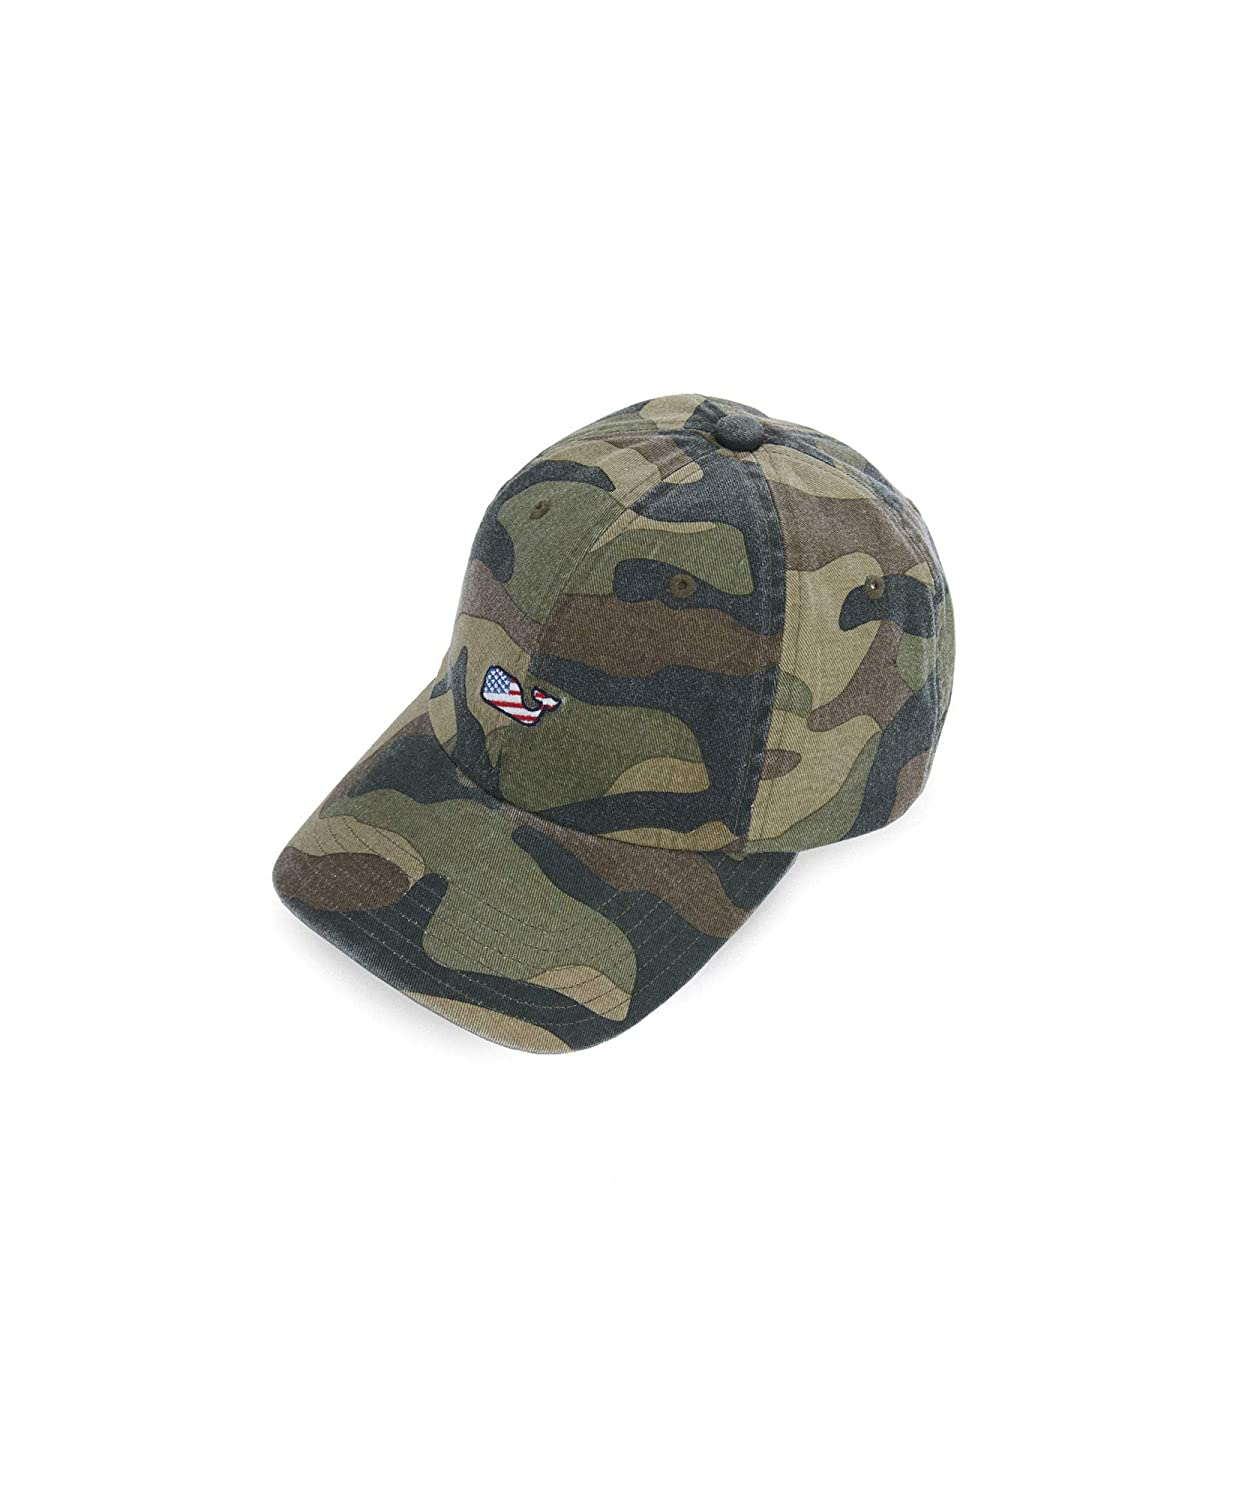 006ba113eaeb7 VINEYARD VINES Washed Camo Flag Whale Baseball Hat  Amazon.ca  Clothing    Accessories